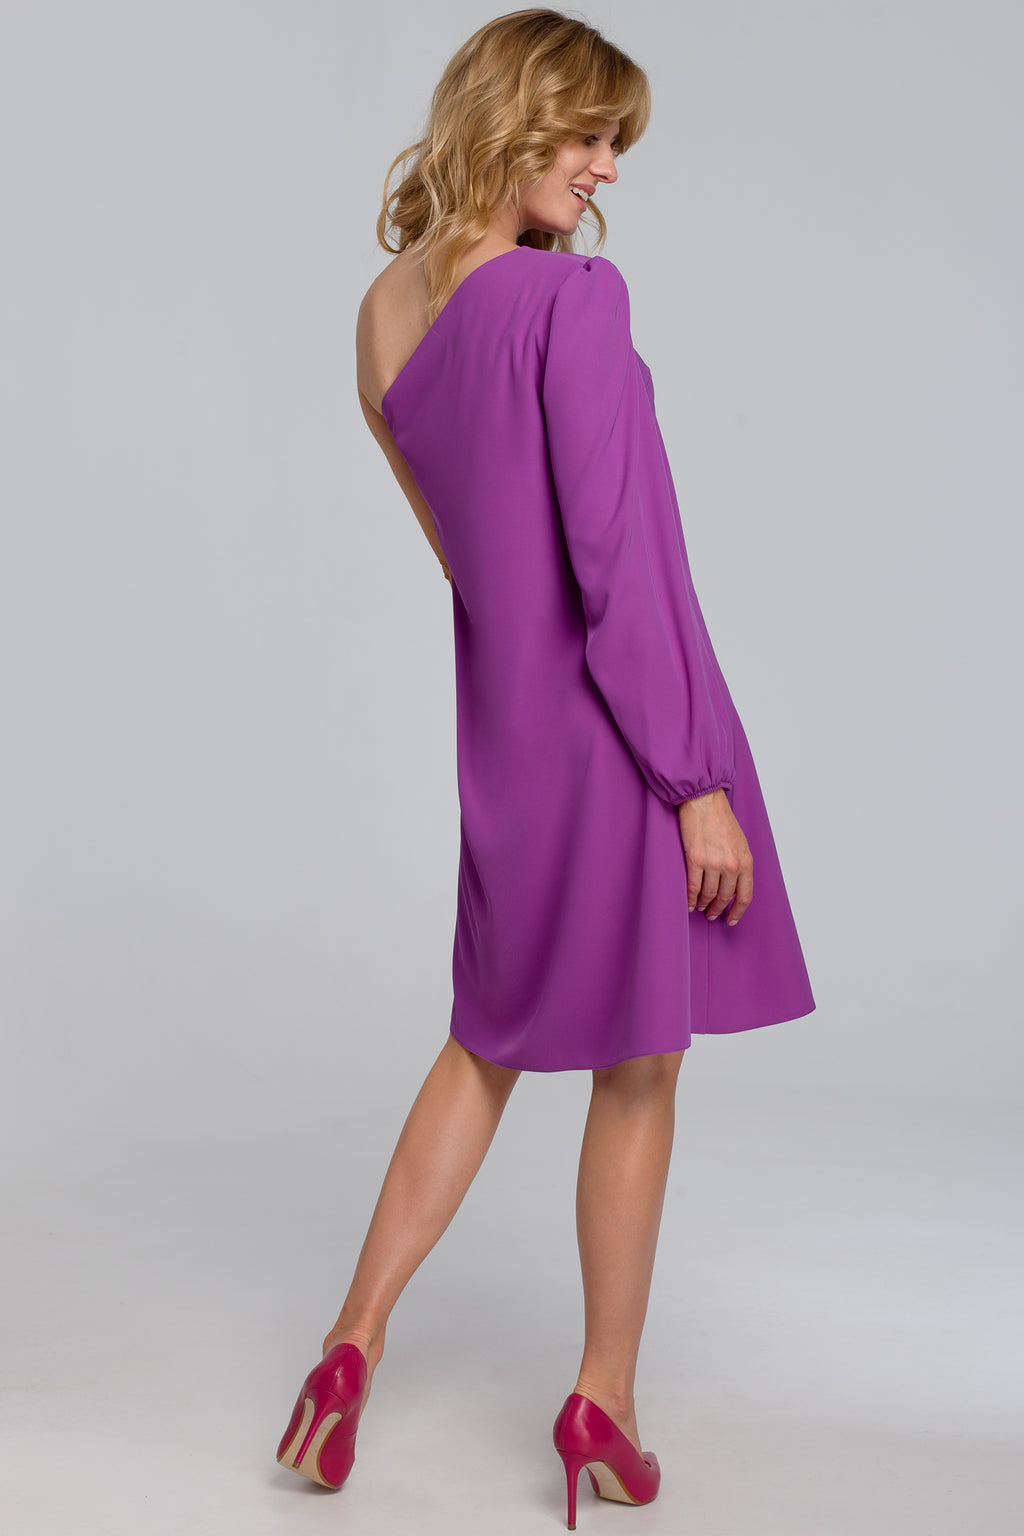 One Shoulder Purple Dress - So Chic Boutique